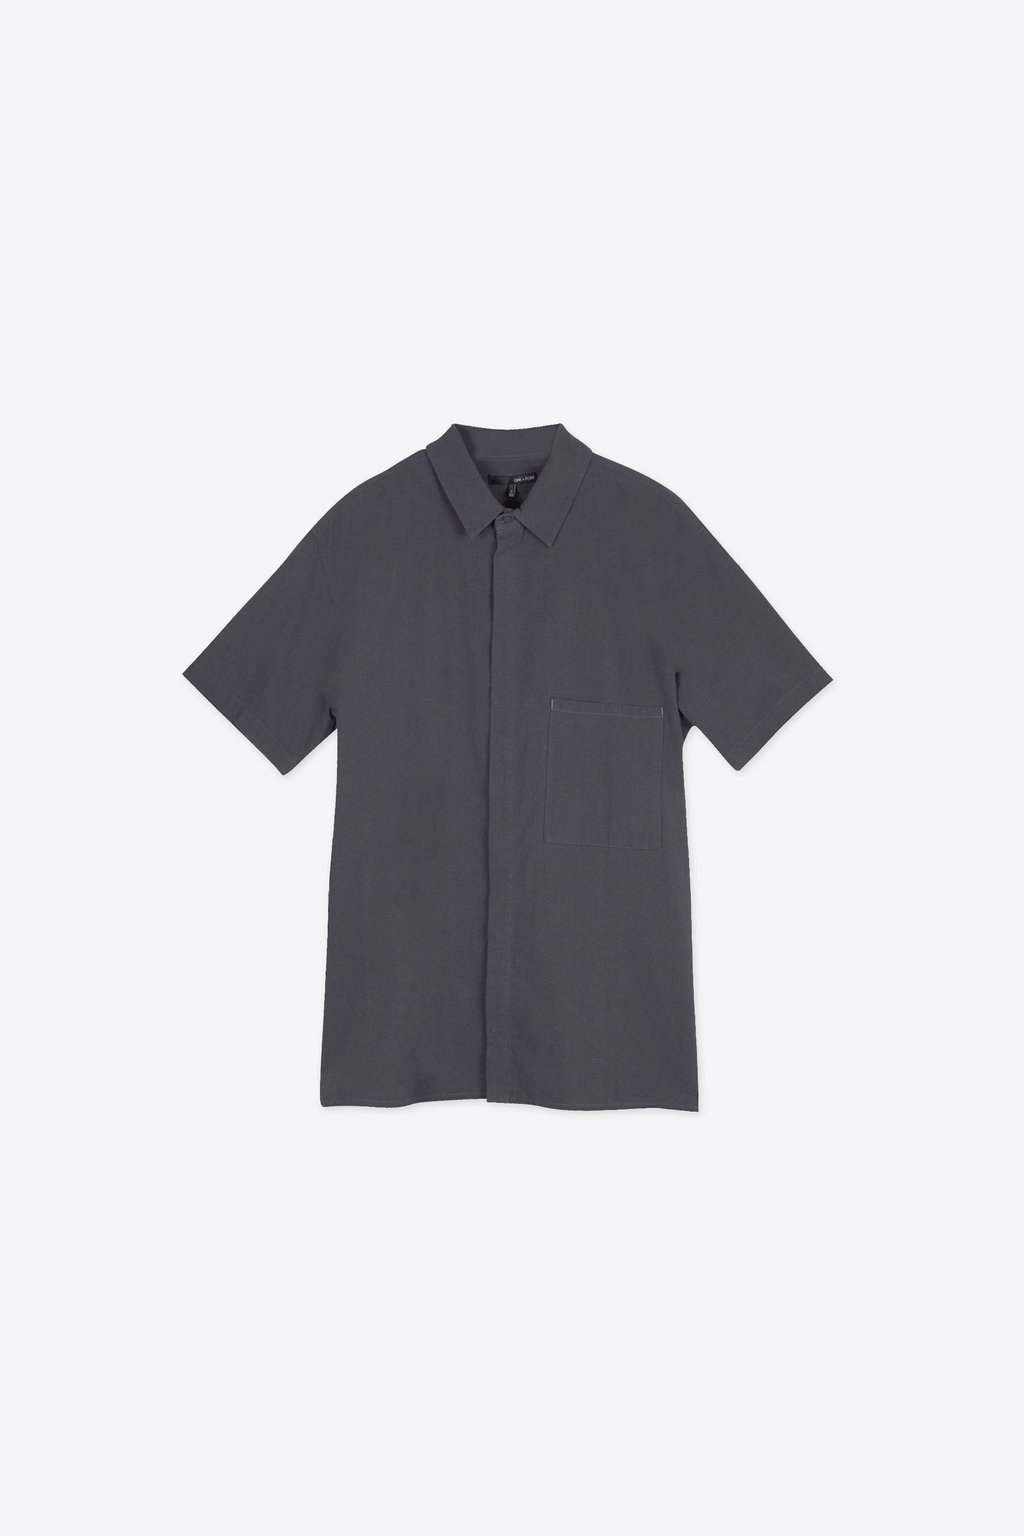 Shirt 1143 Dark Gray 6